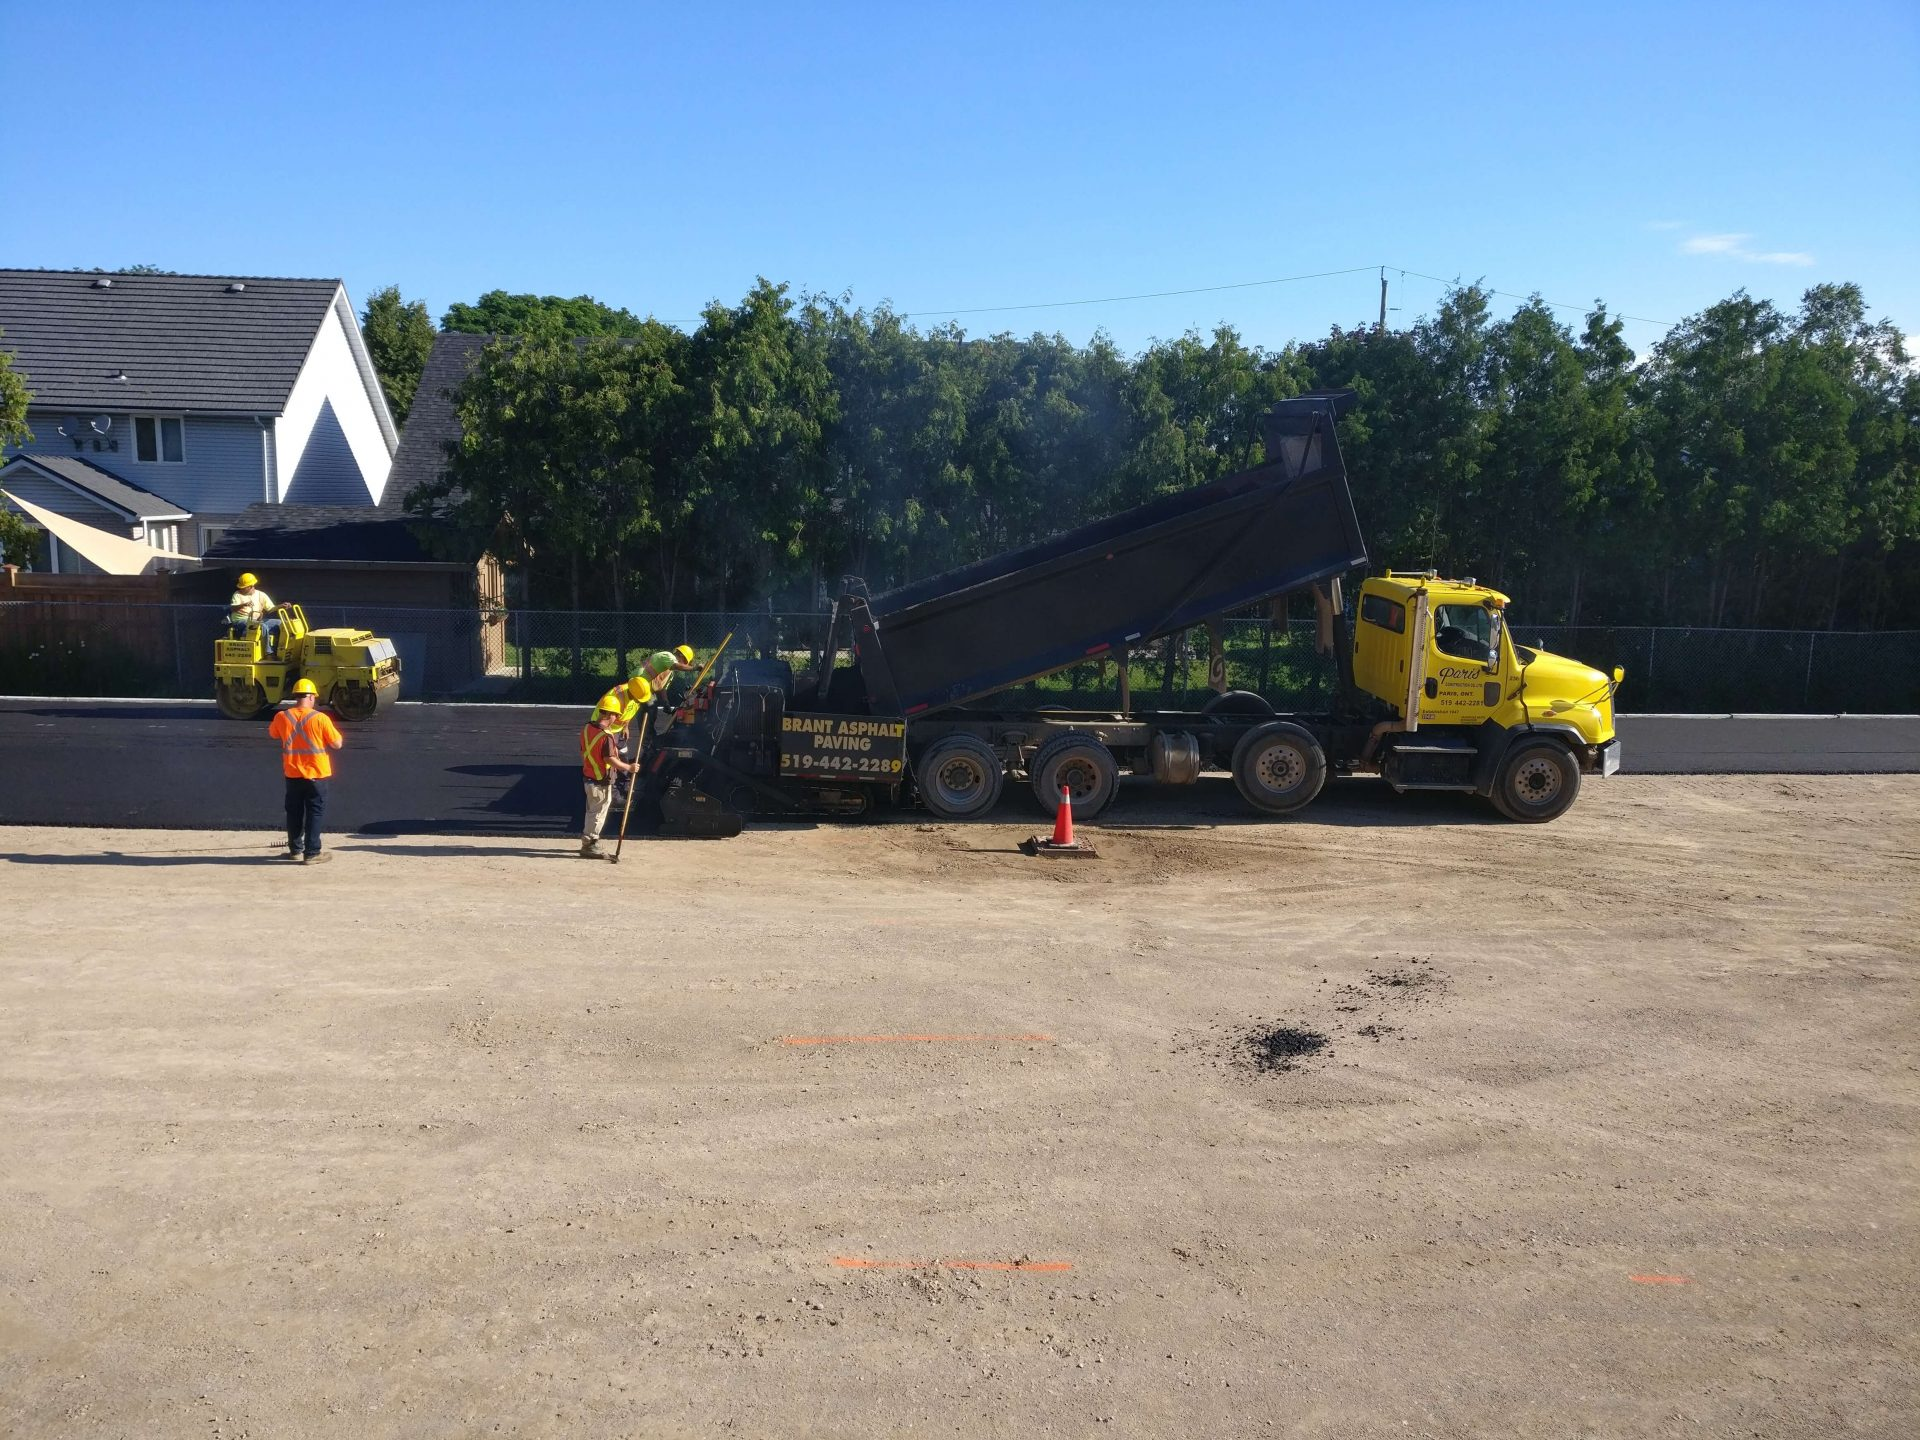 construction workers shovelling asphalt